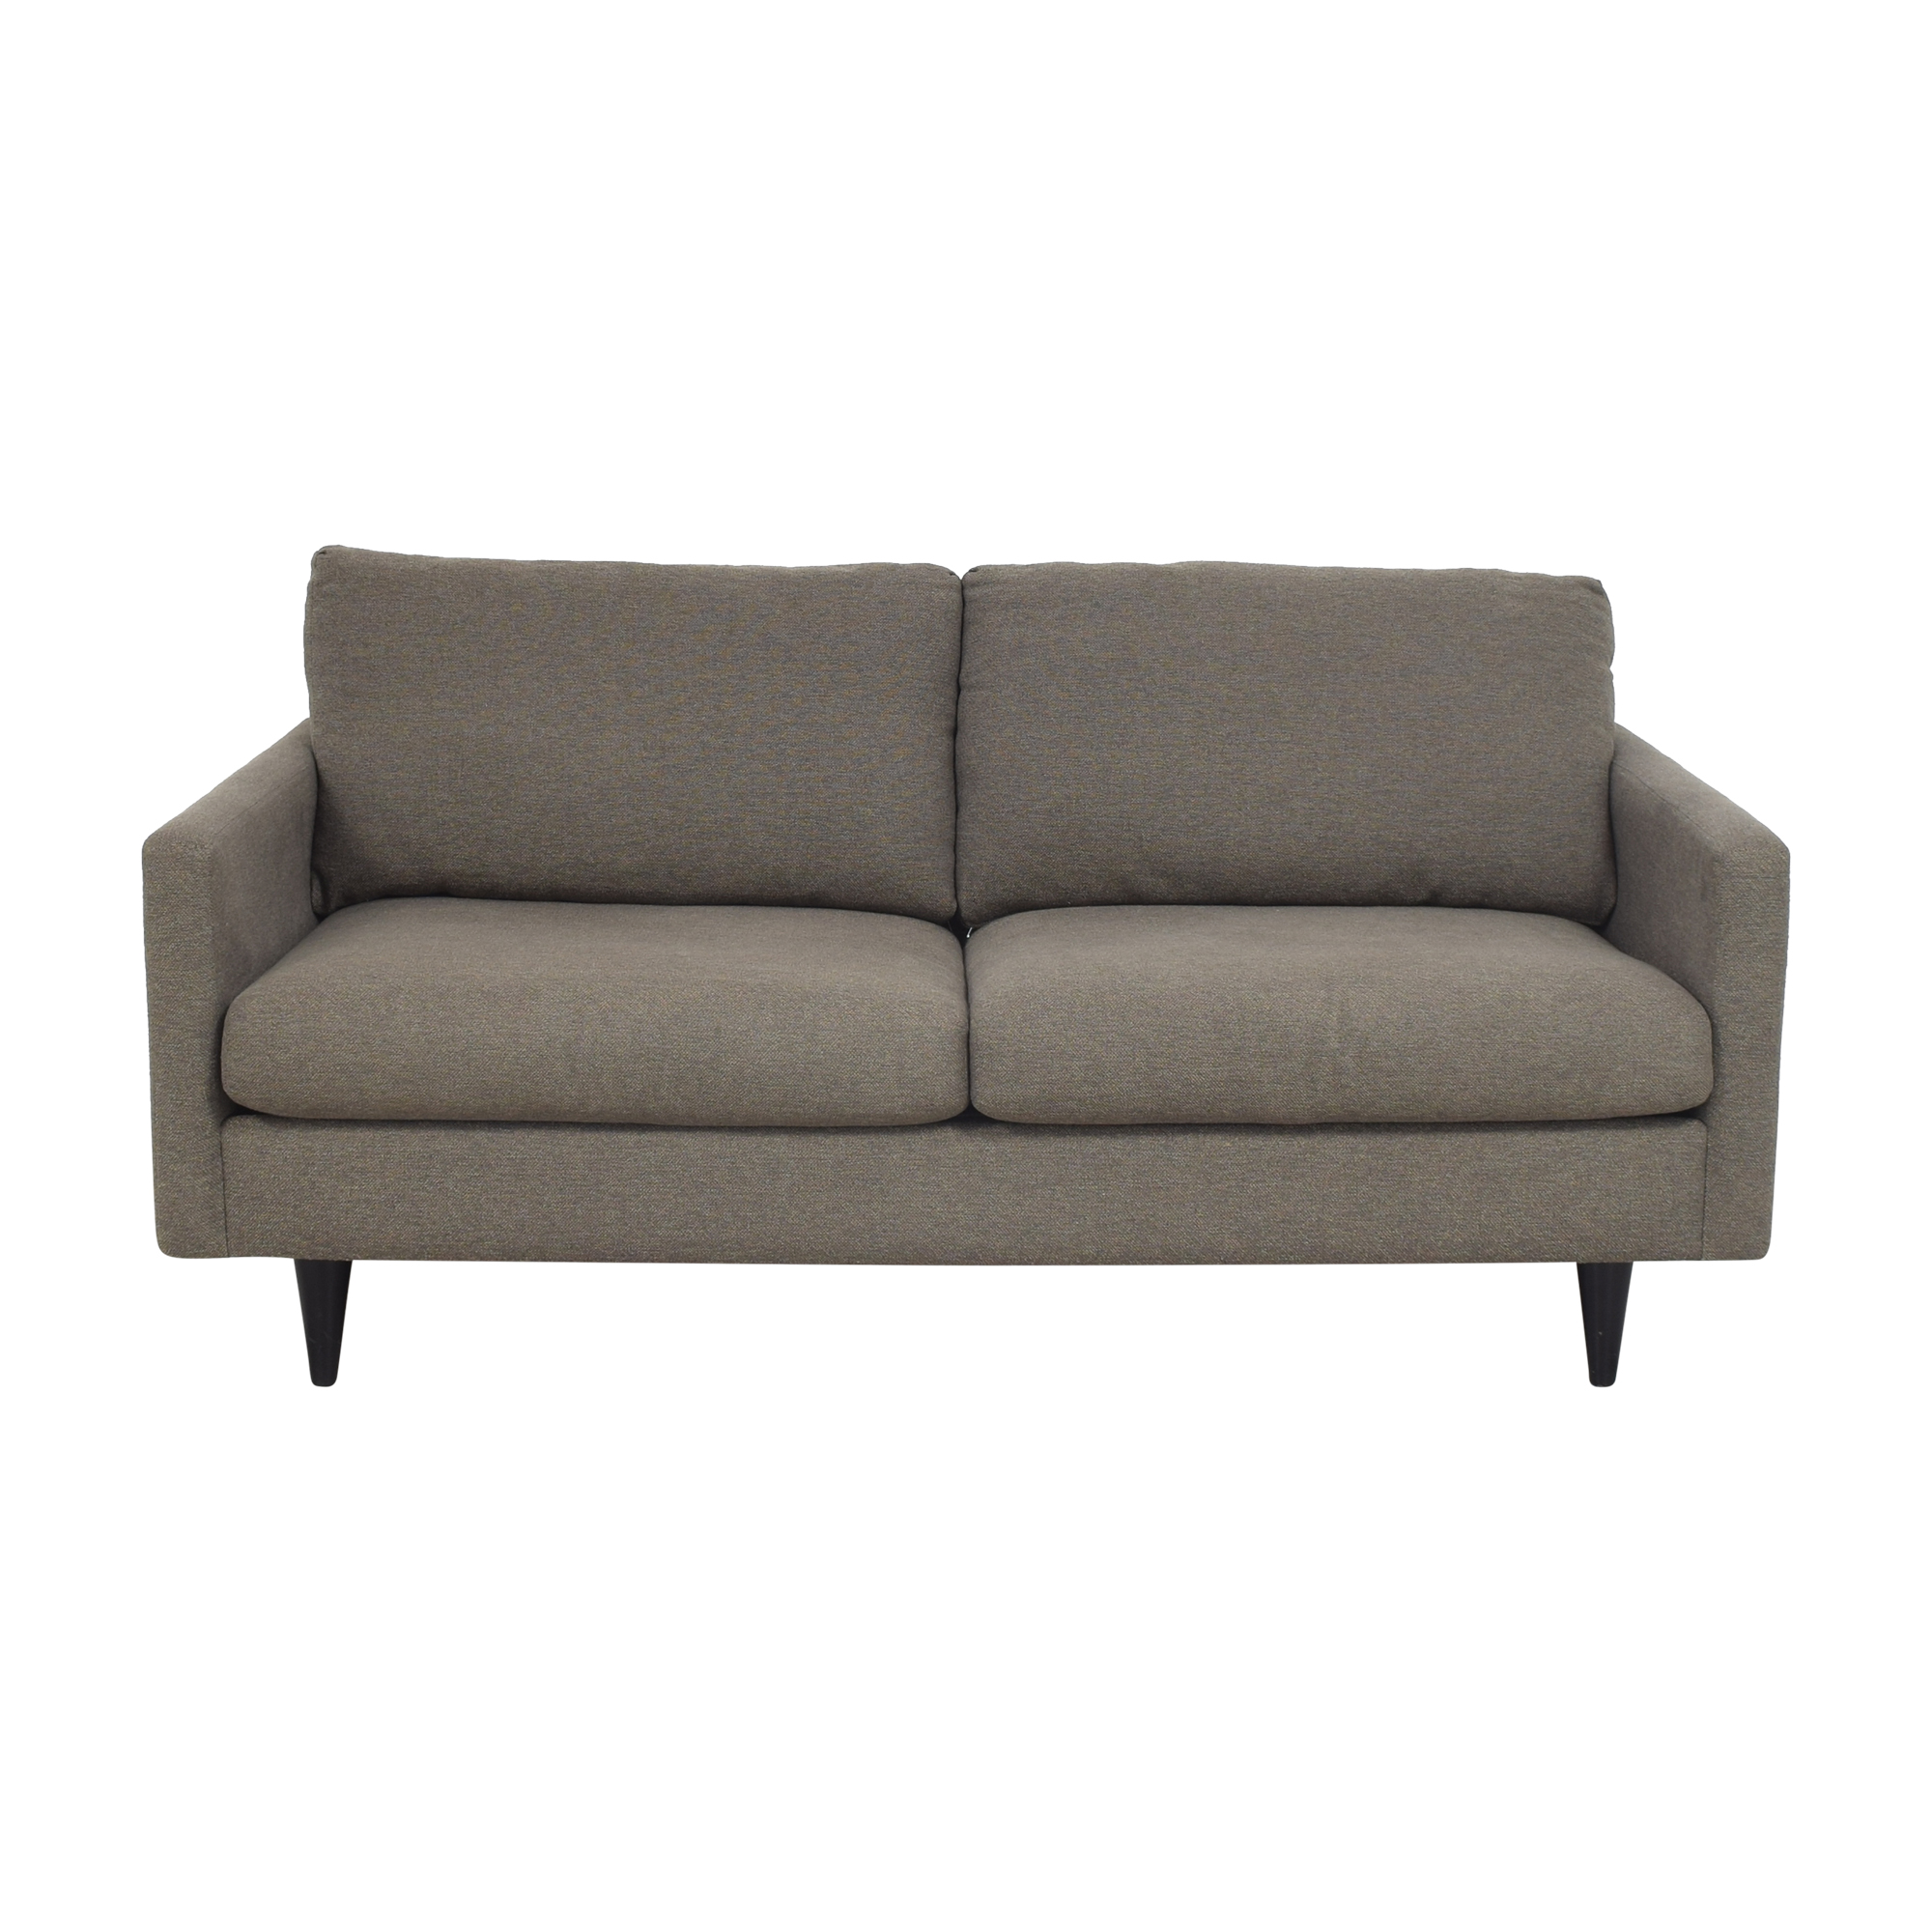 Younger Furniture Younger Furniture Lenny Apartment Sofa ct